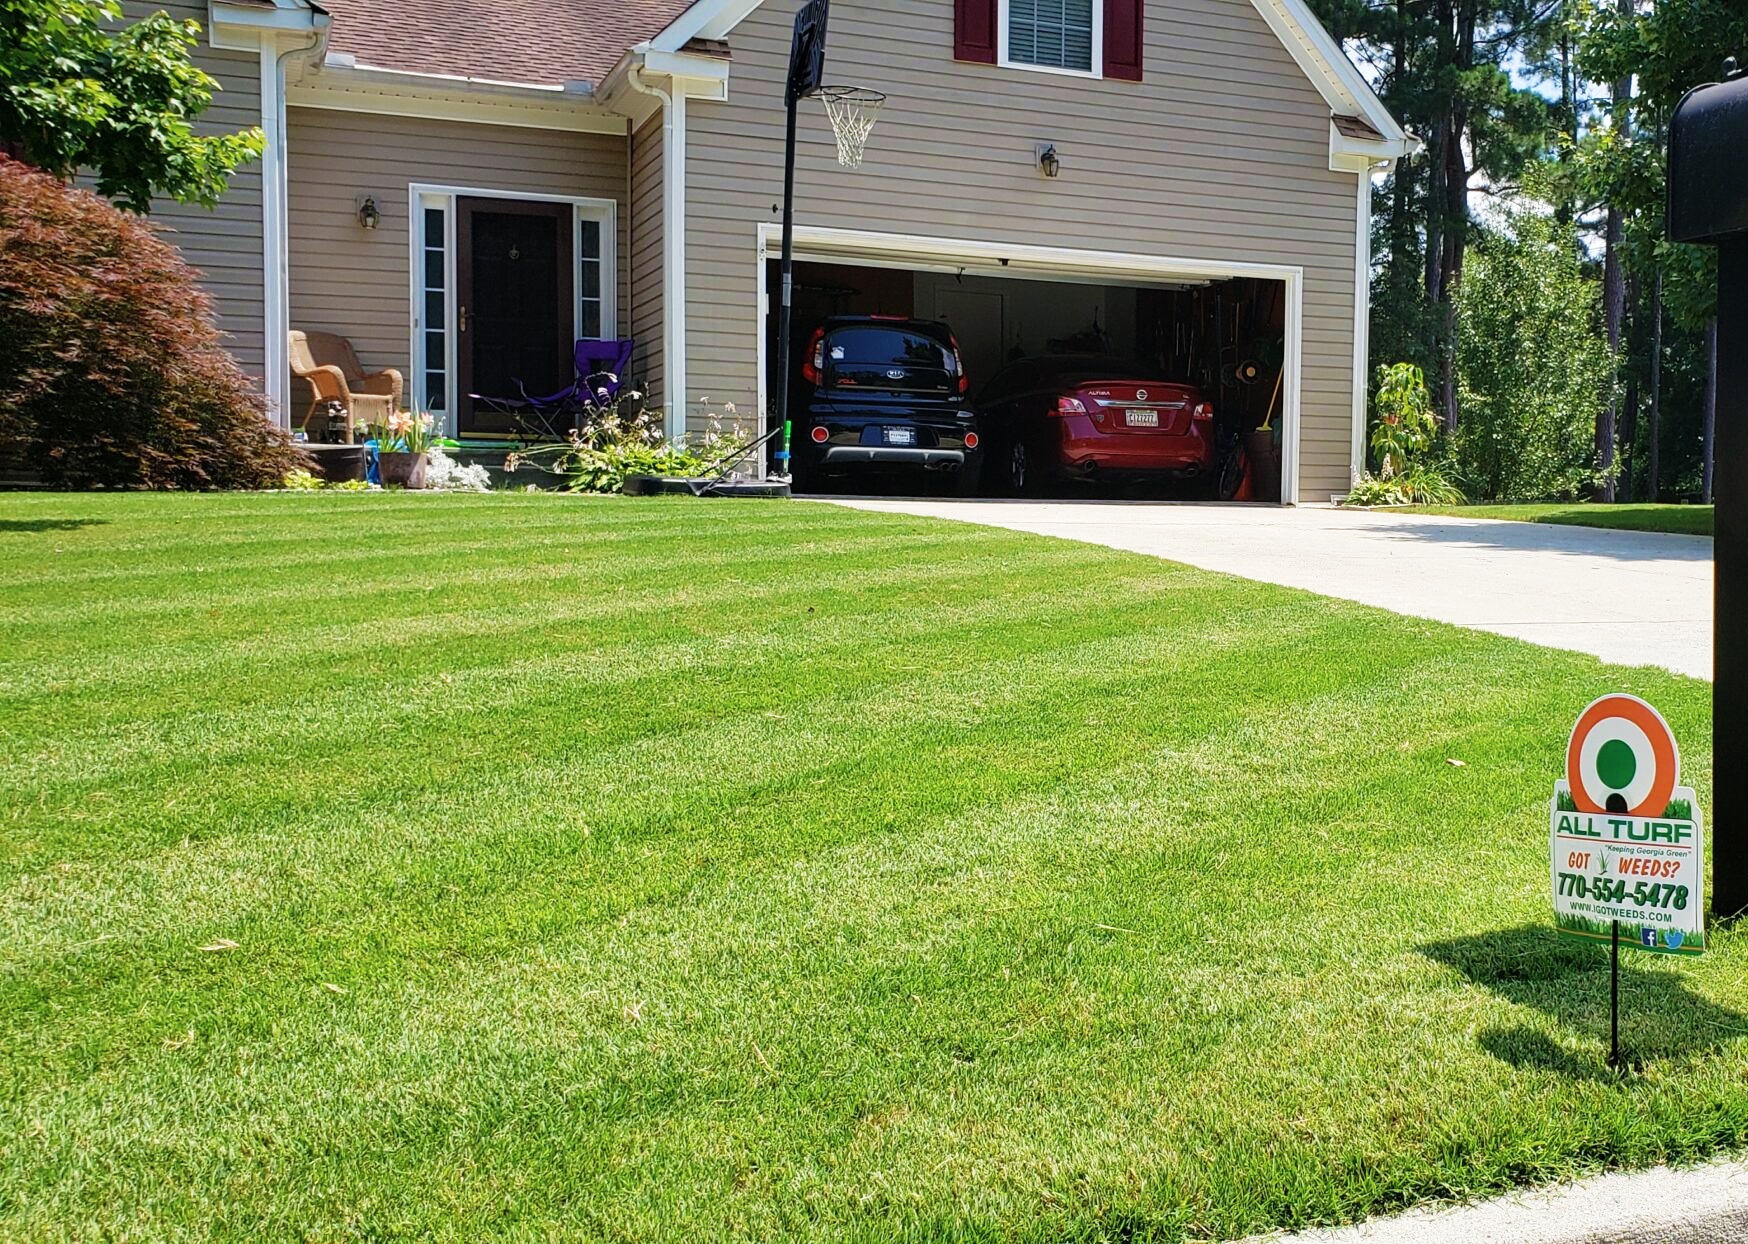 east side atlanta lawn care, all turf lawn care, east side atlanta weed control